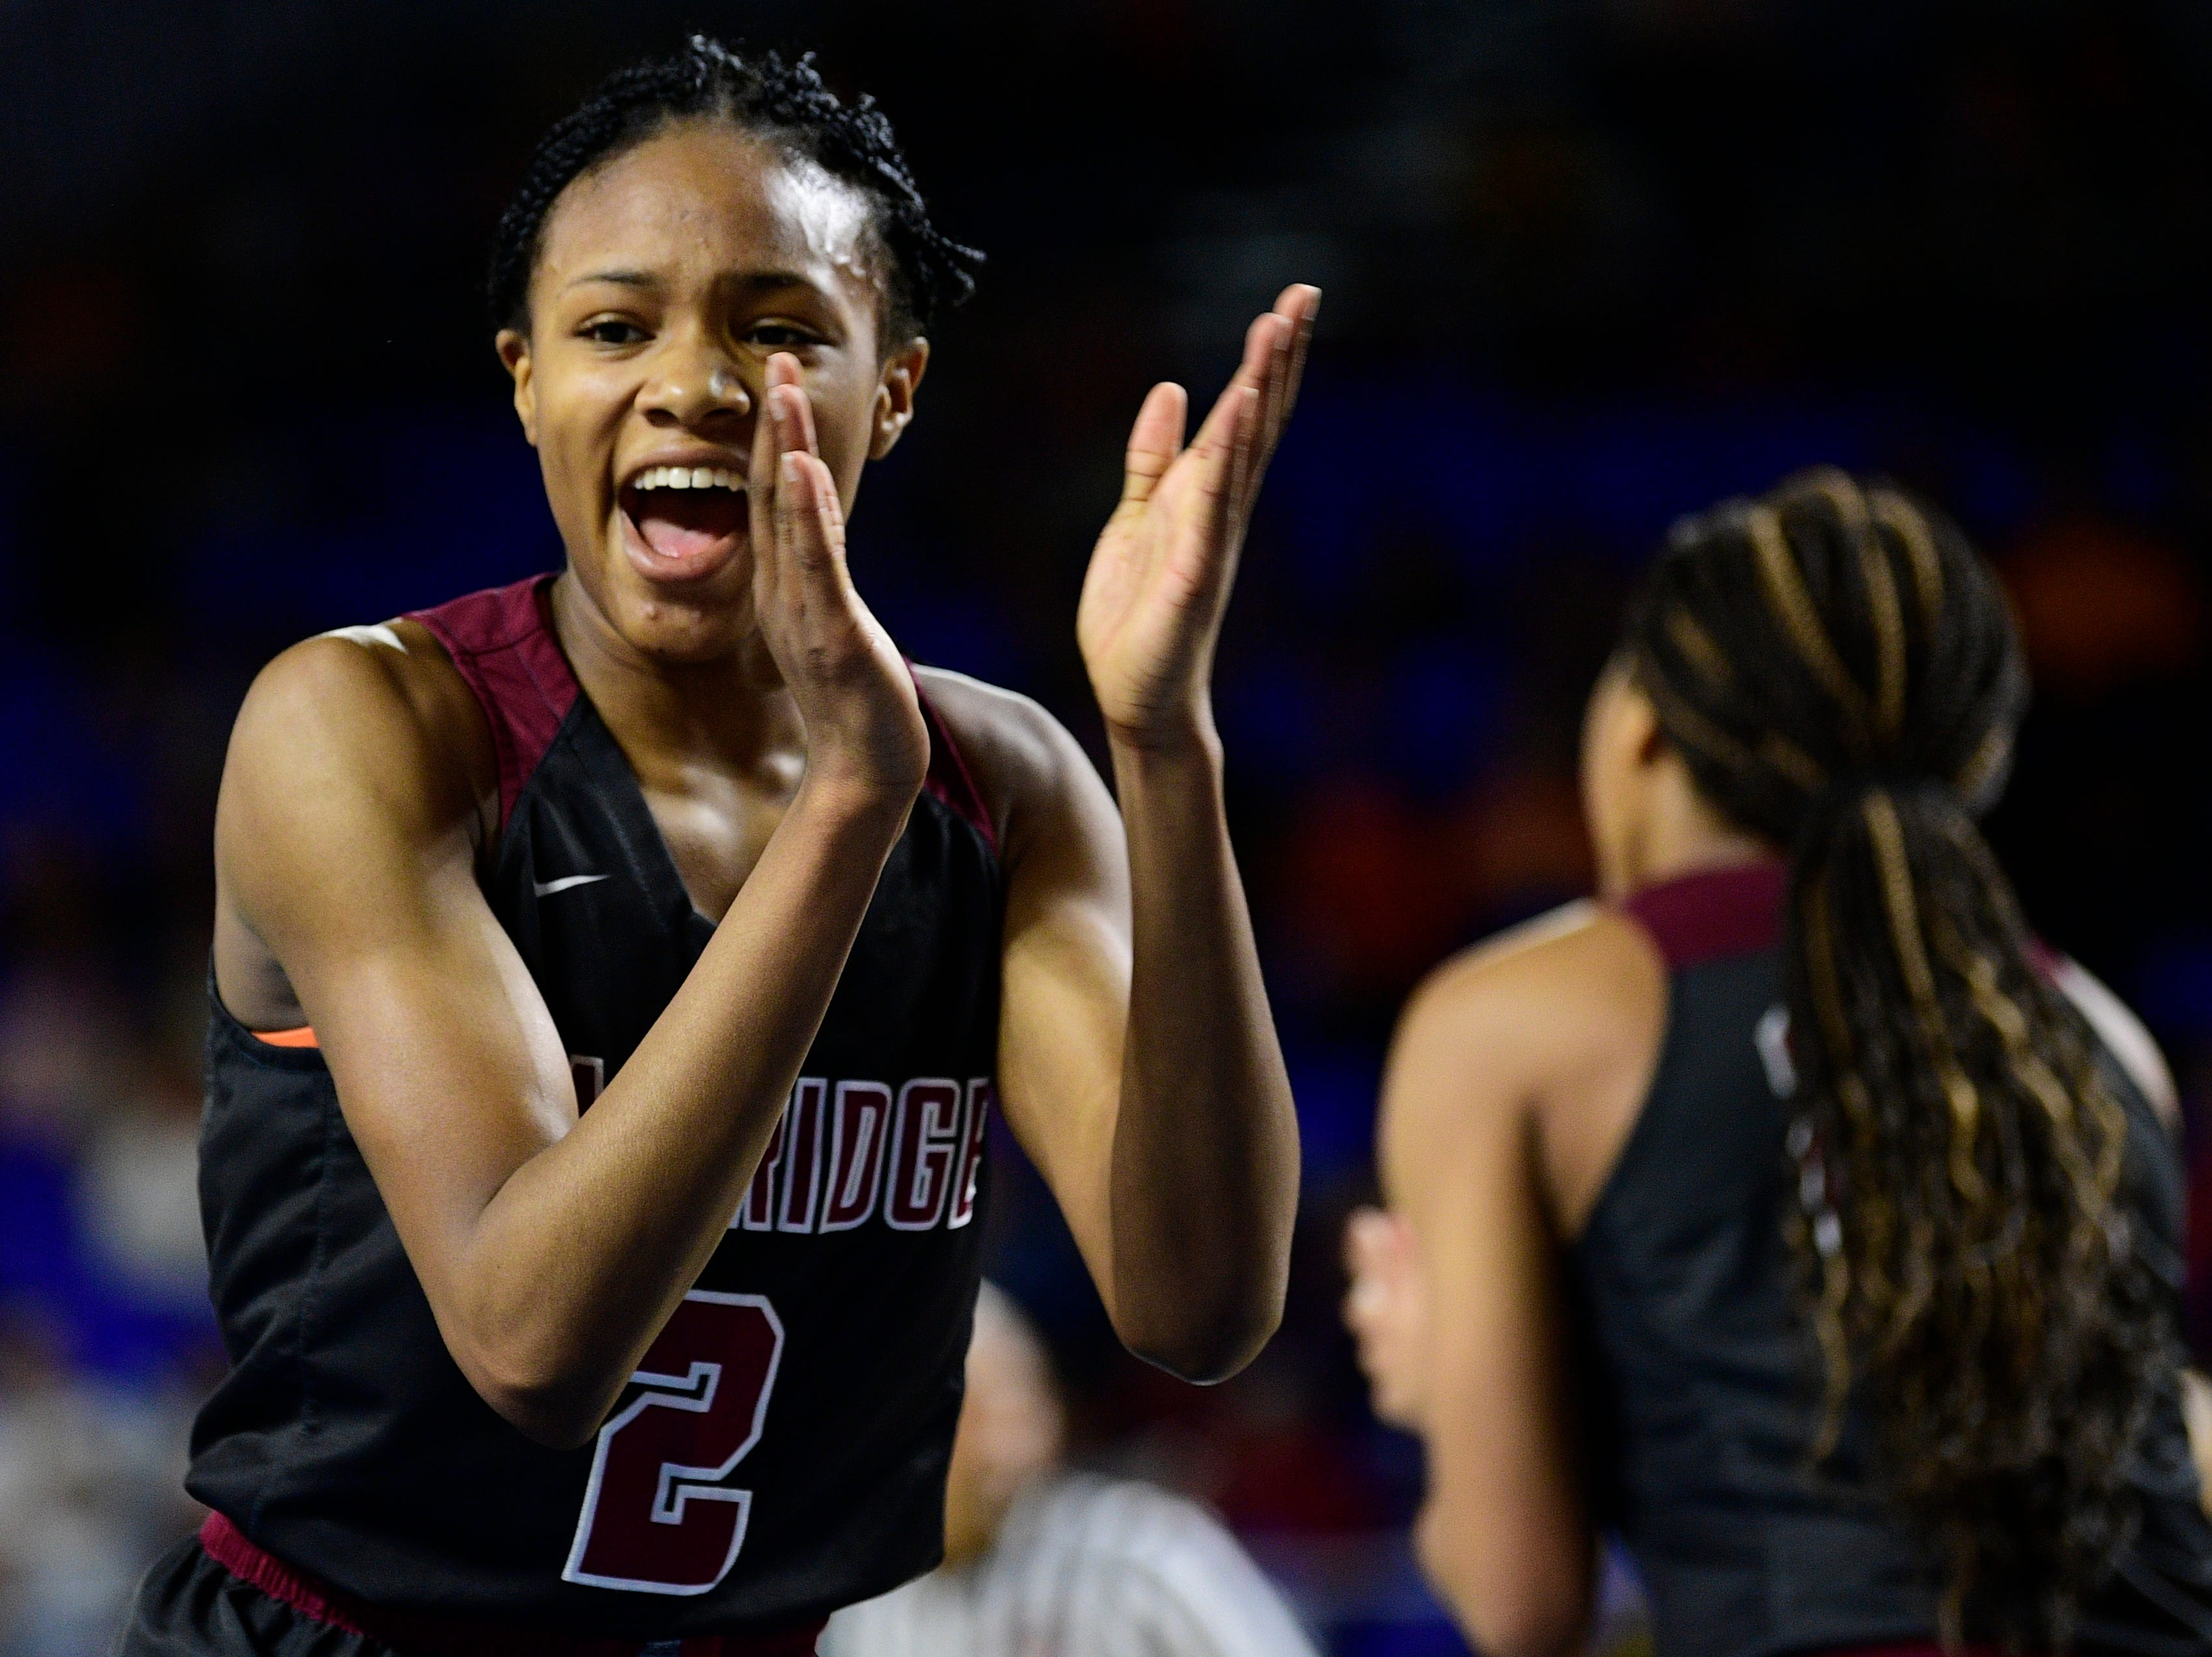 Oak Ridge's Khamari Mitchell-Steens (2) celebrates a point during a game between Oak Ridge and Bradley Central at the TSSAA girls state tournament at the Murphy Center in Murfreesboro, Tennessee on Friday, March 8, 2019.